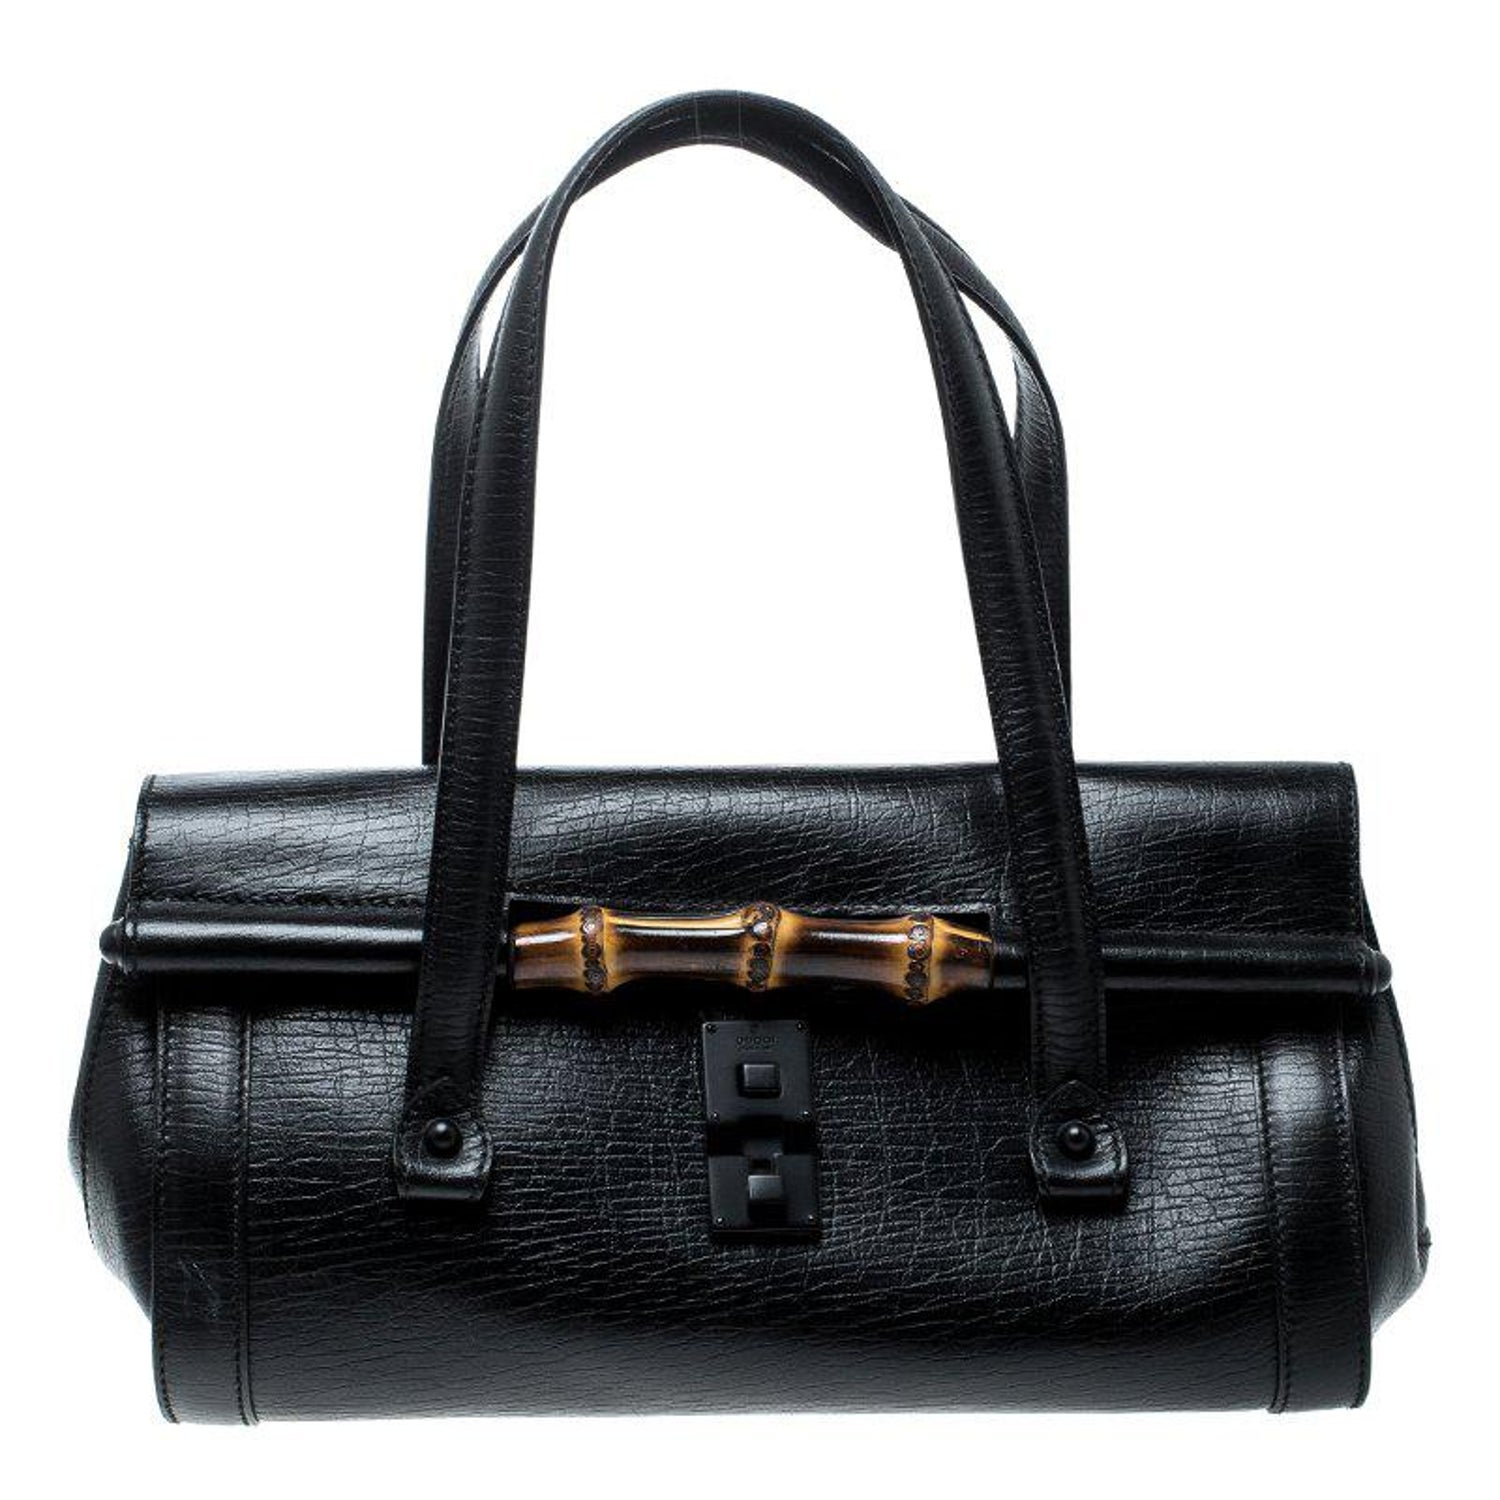 644323e55caee1 Gucci Black Leather Bamboo Bullet Satchel For Sale at 1stdibs